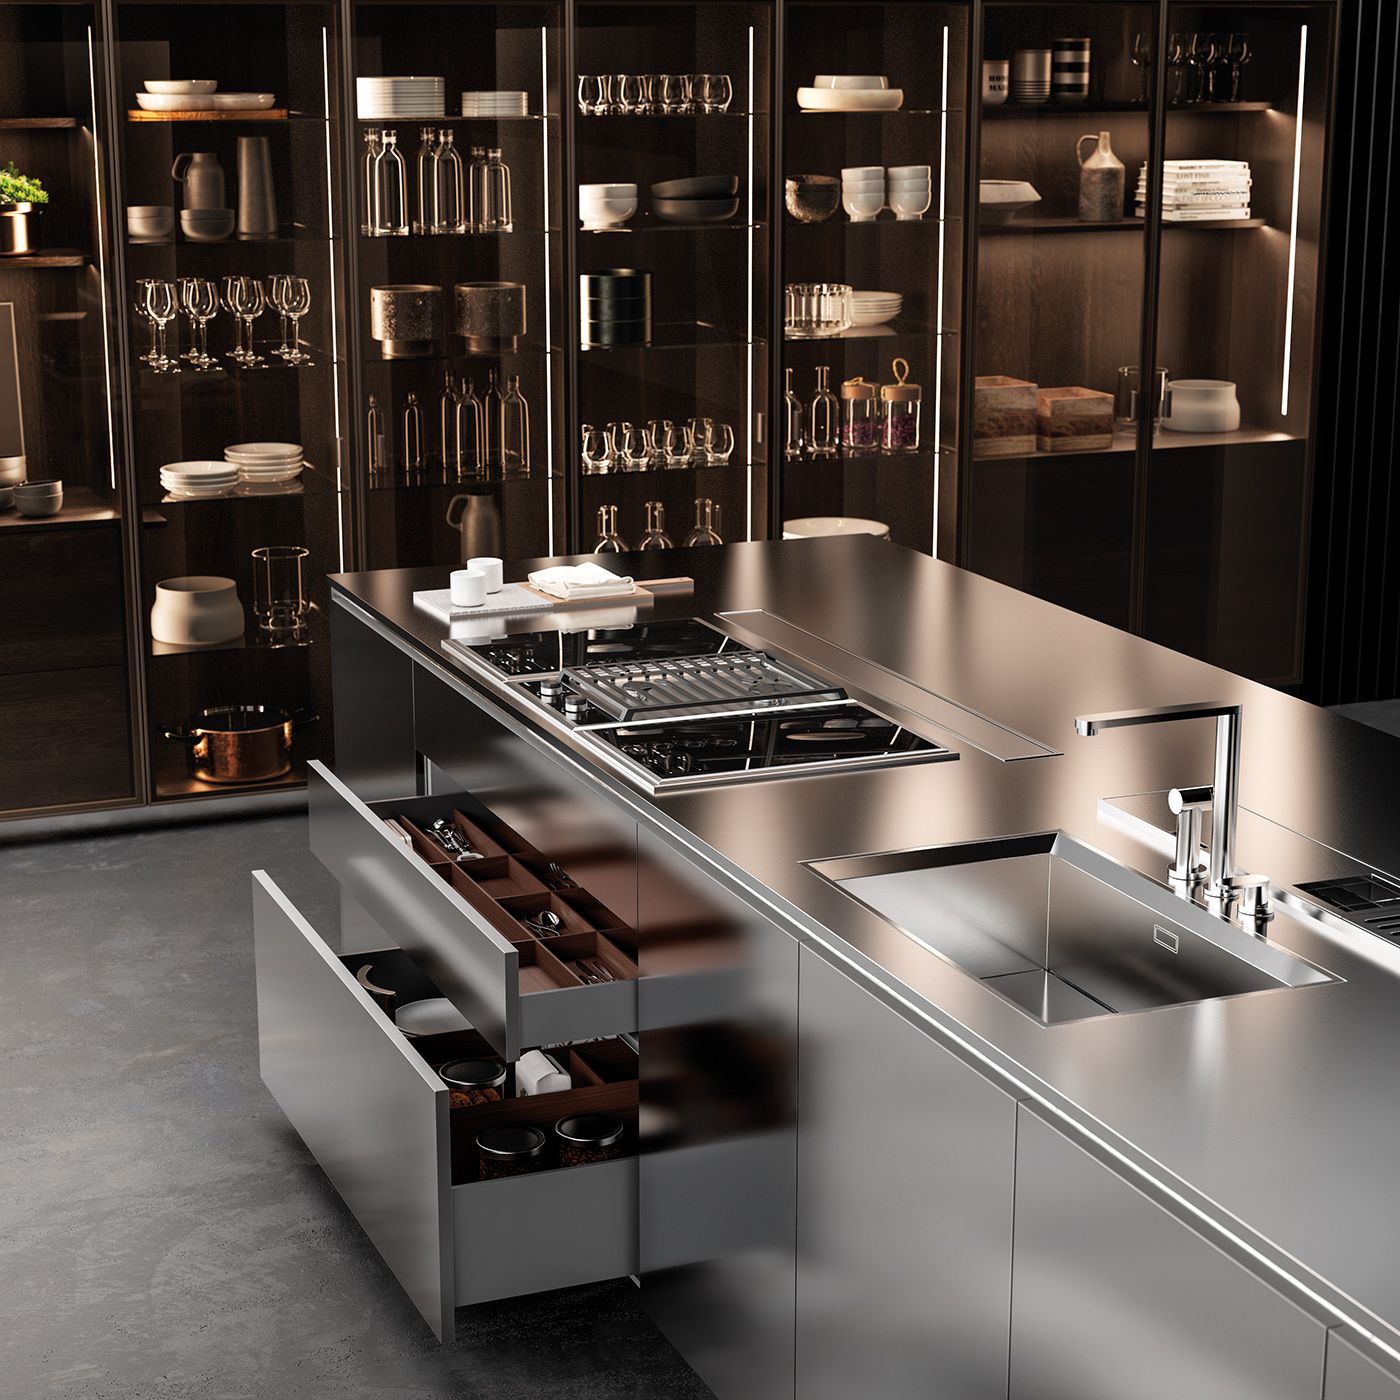 Kitchen Pantry Lighting: Innenarchitektur Küche, Küchendesign, Offene